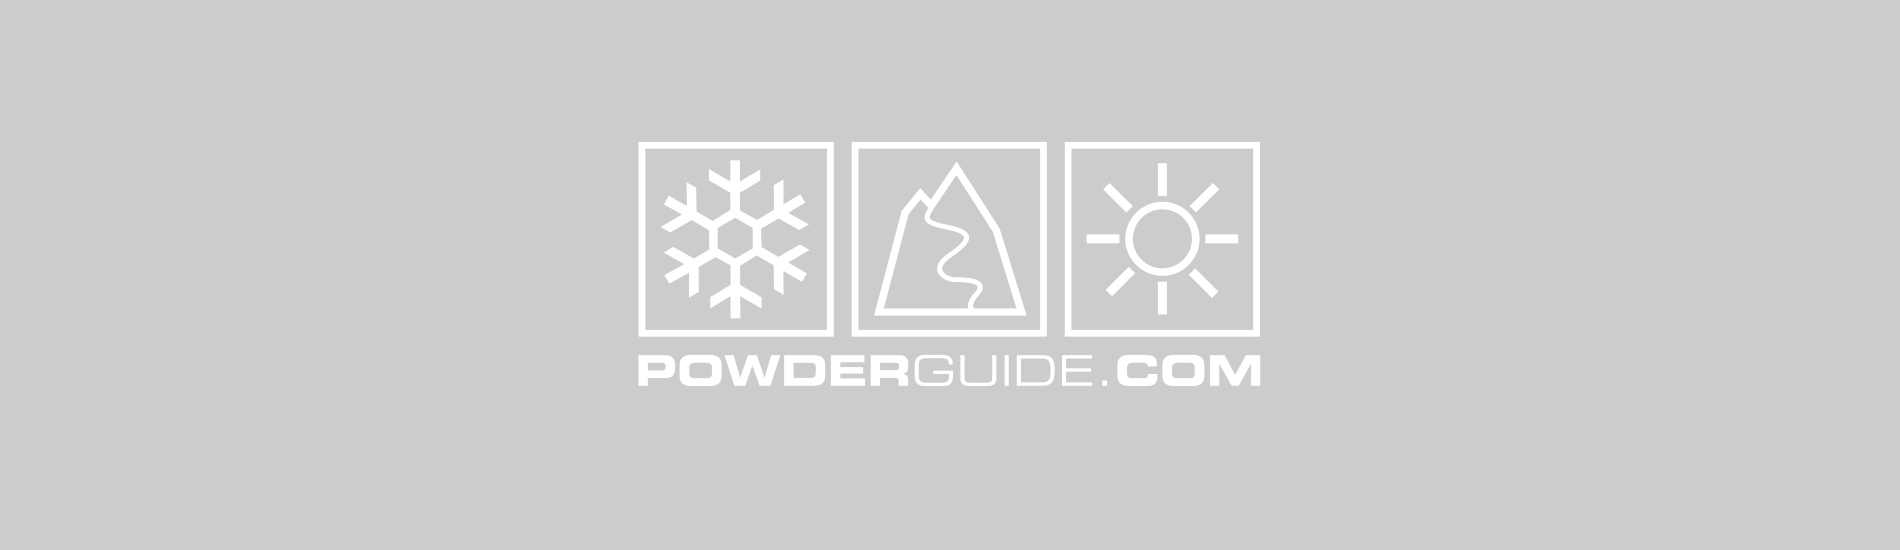 PowderAlarm 7 2017/18 | Südstau